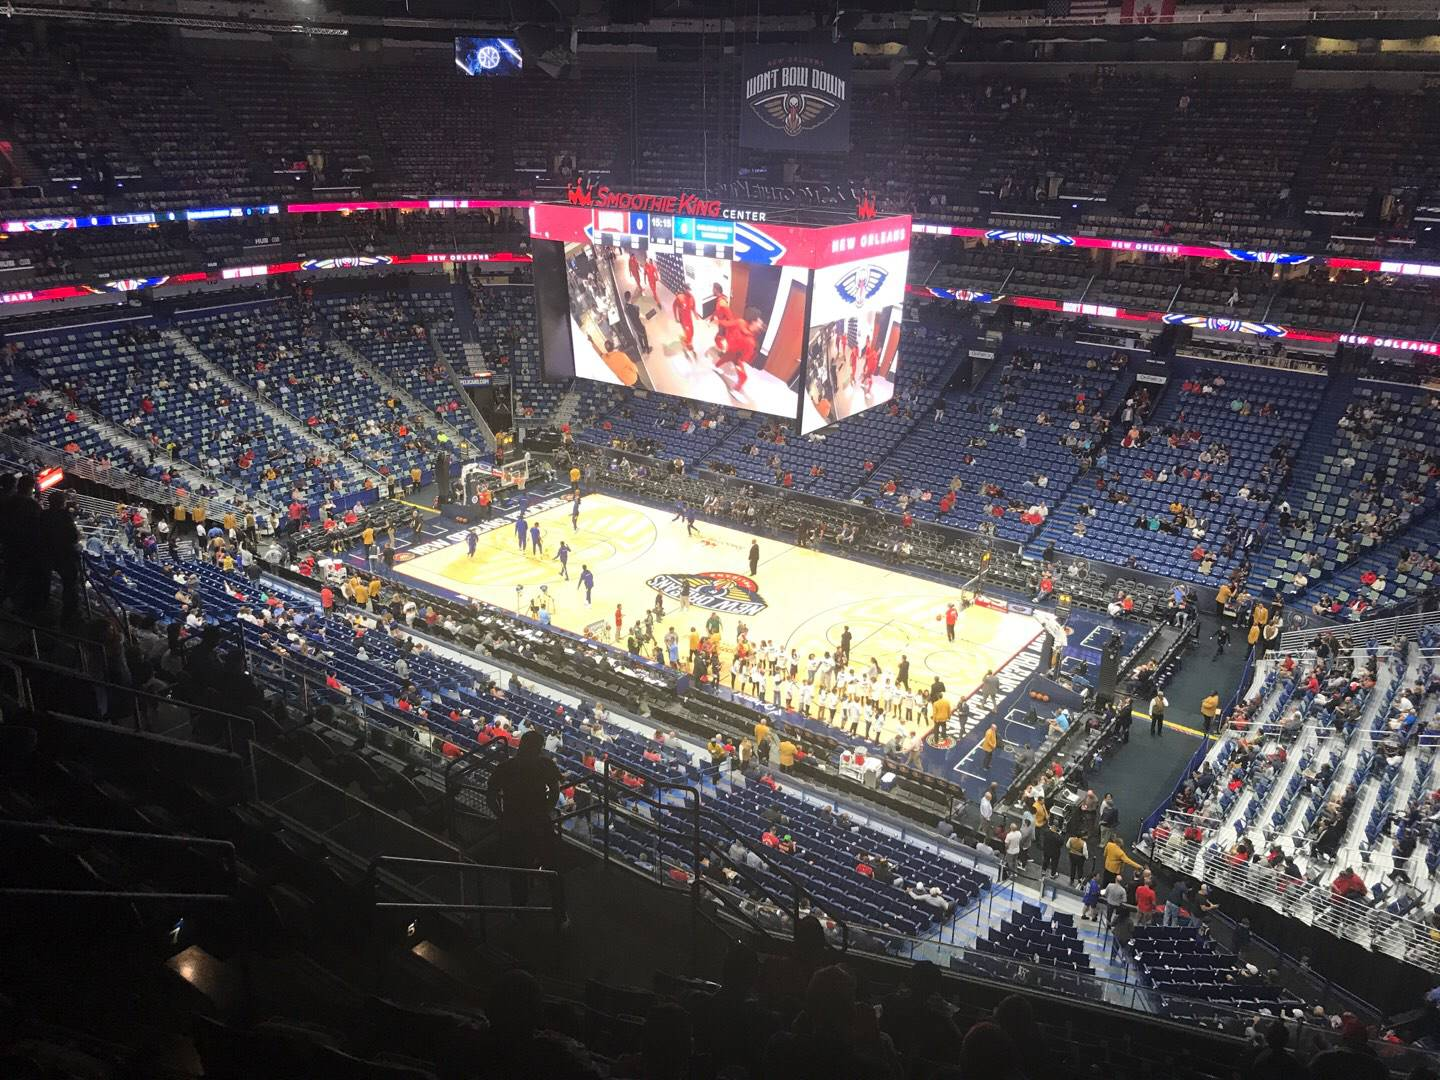 Smoothie King Center Section 313 Row 12 Seat 14